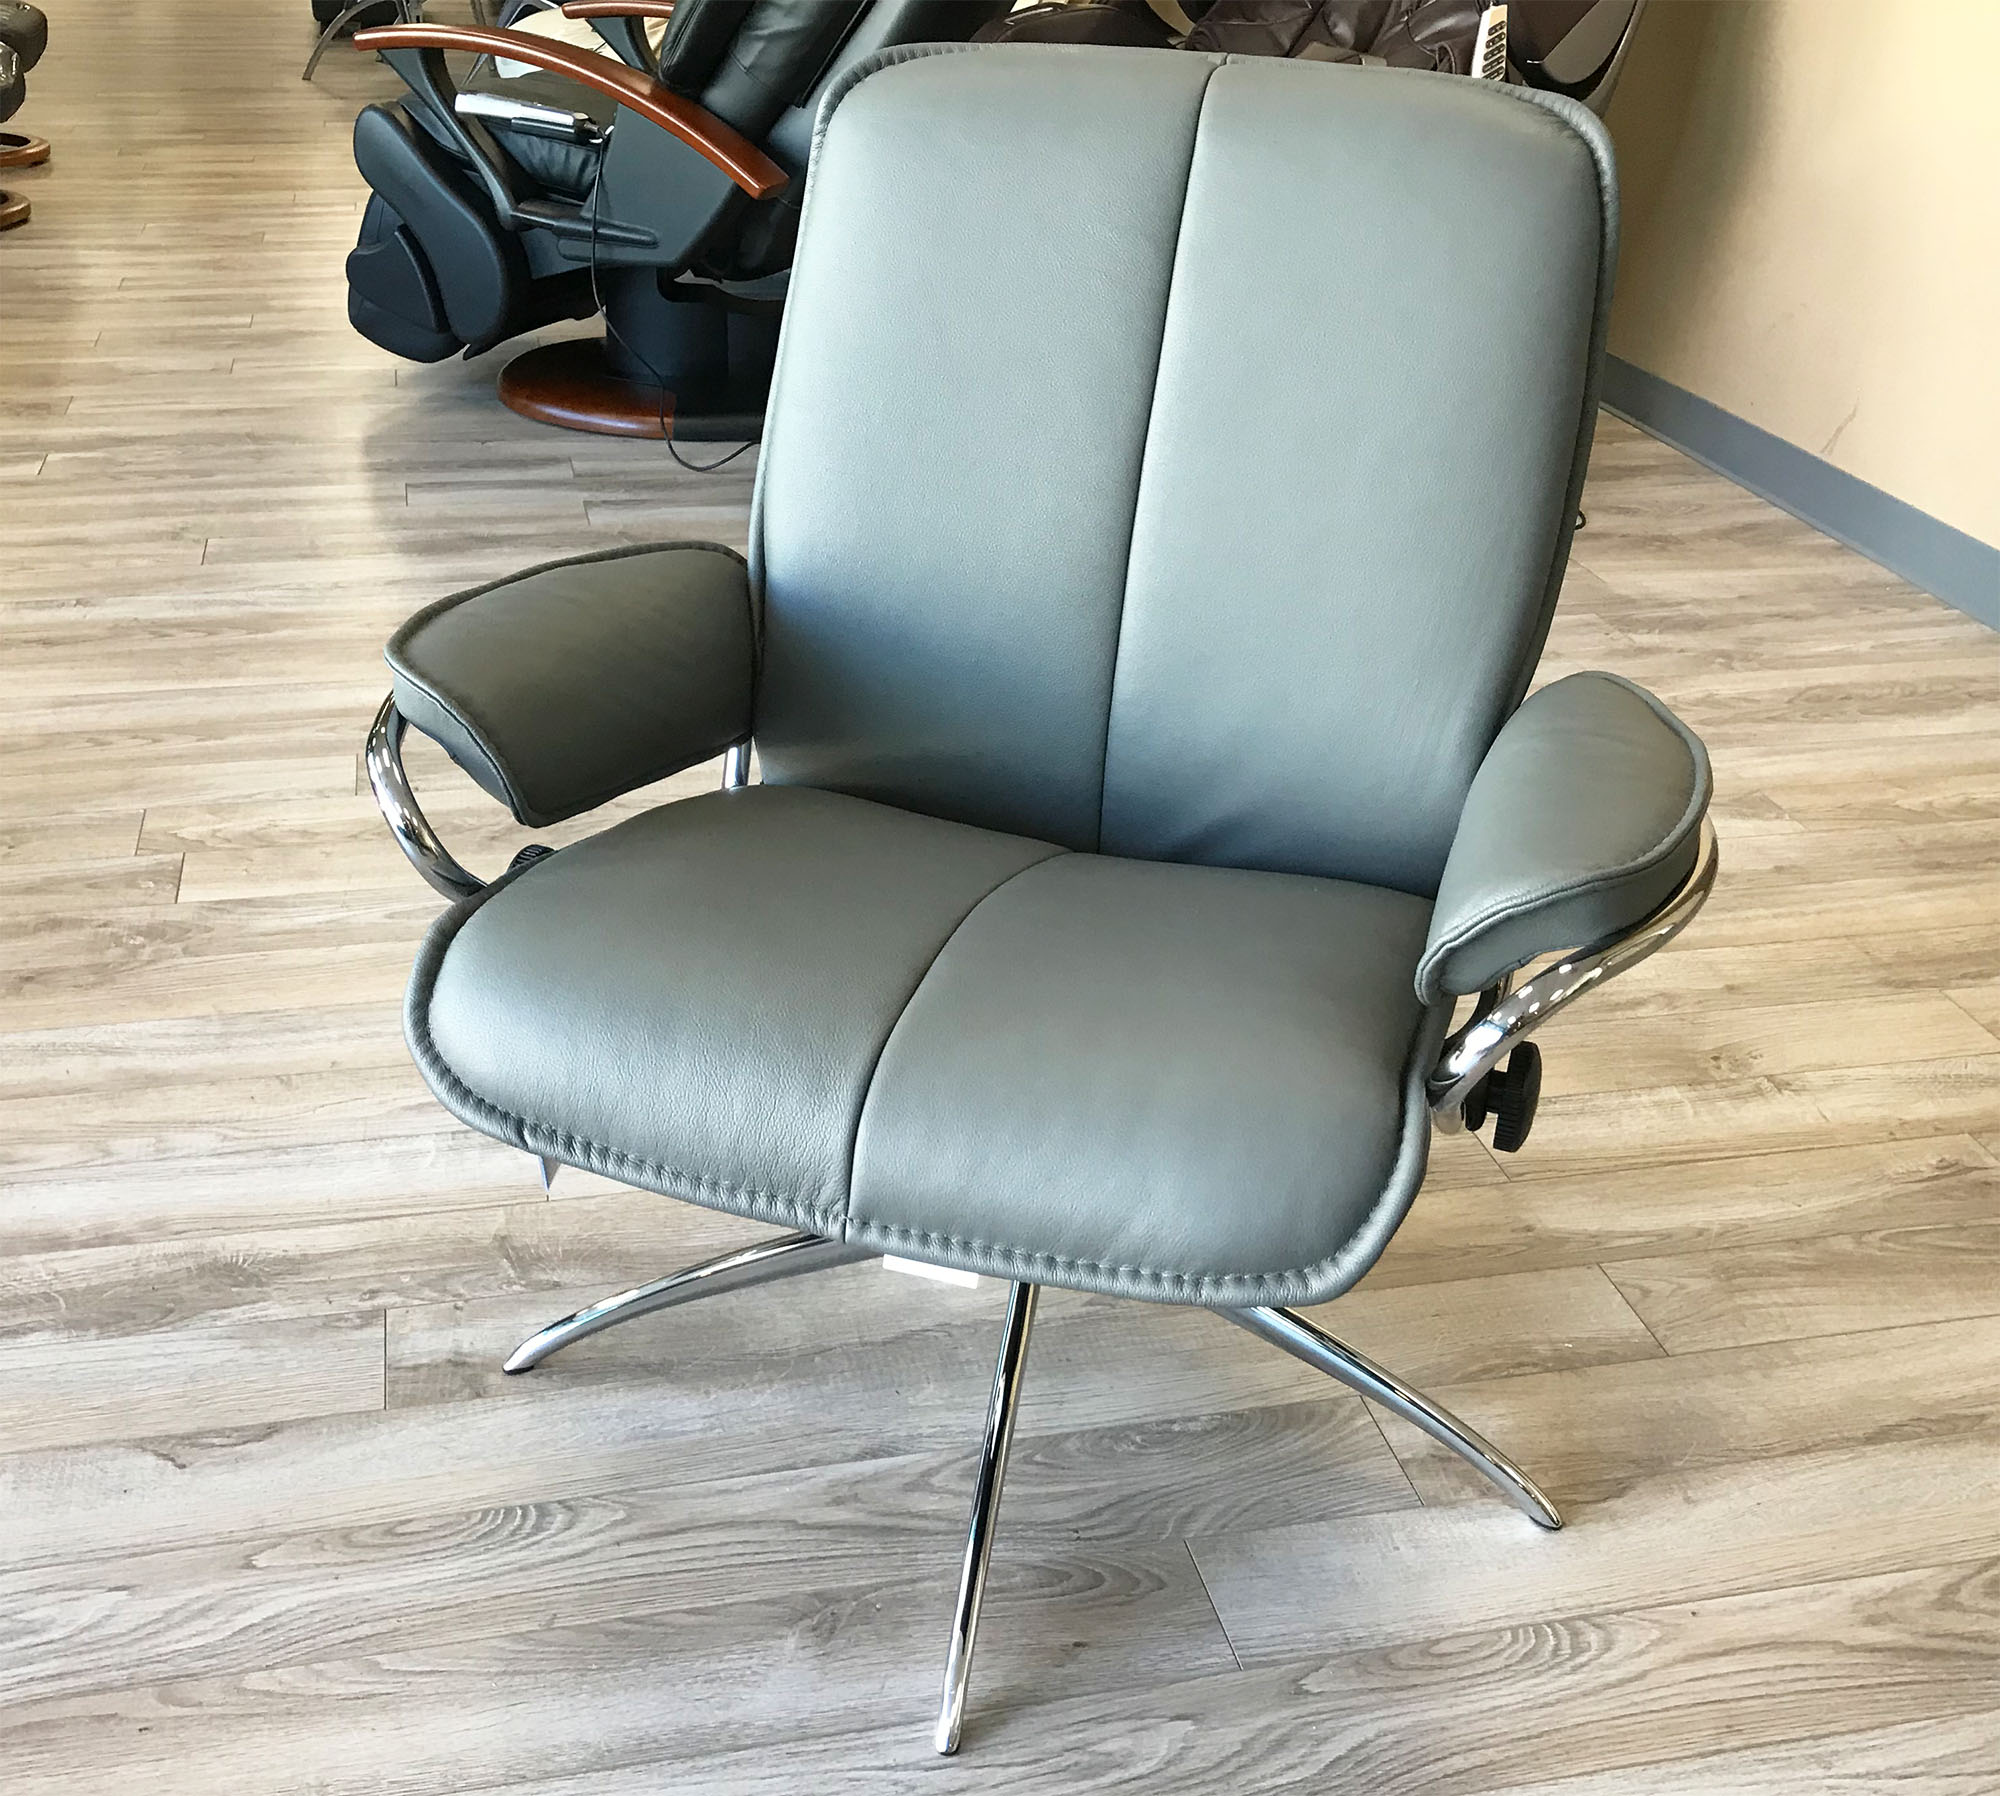 Ekornes Chairs Stressless City Low Back Batick Grey Chrome Base Leather